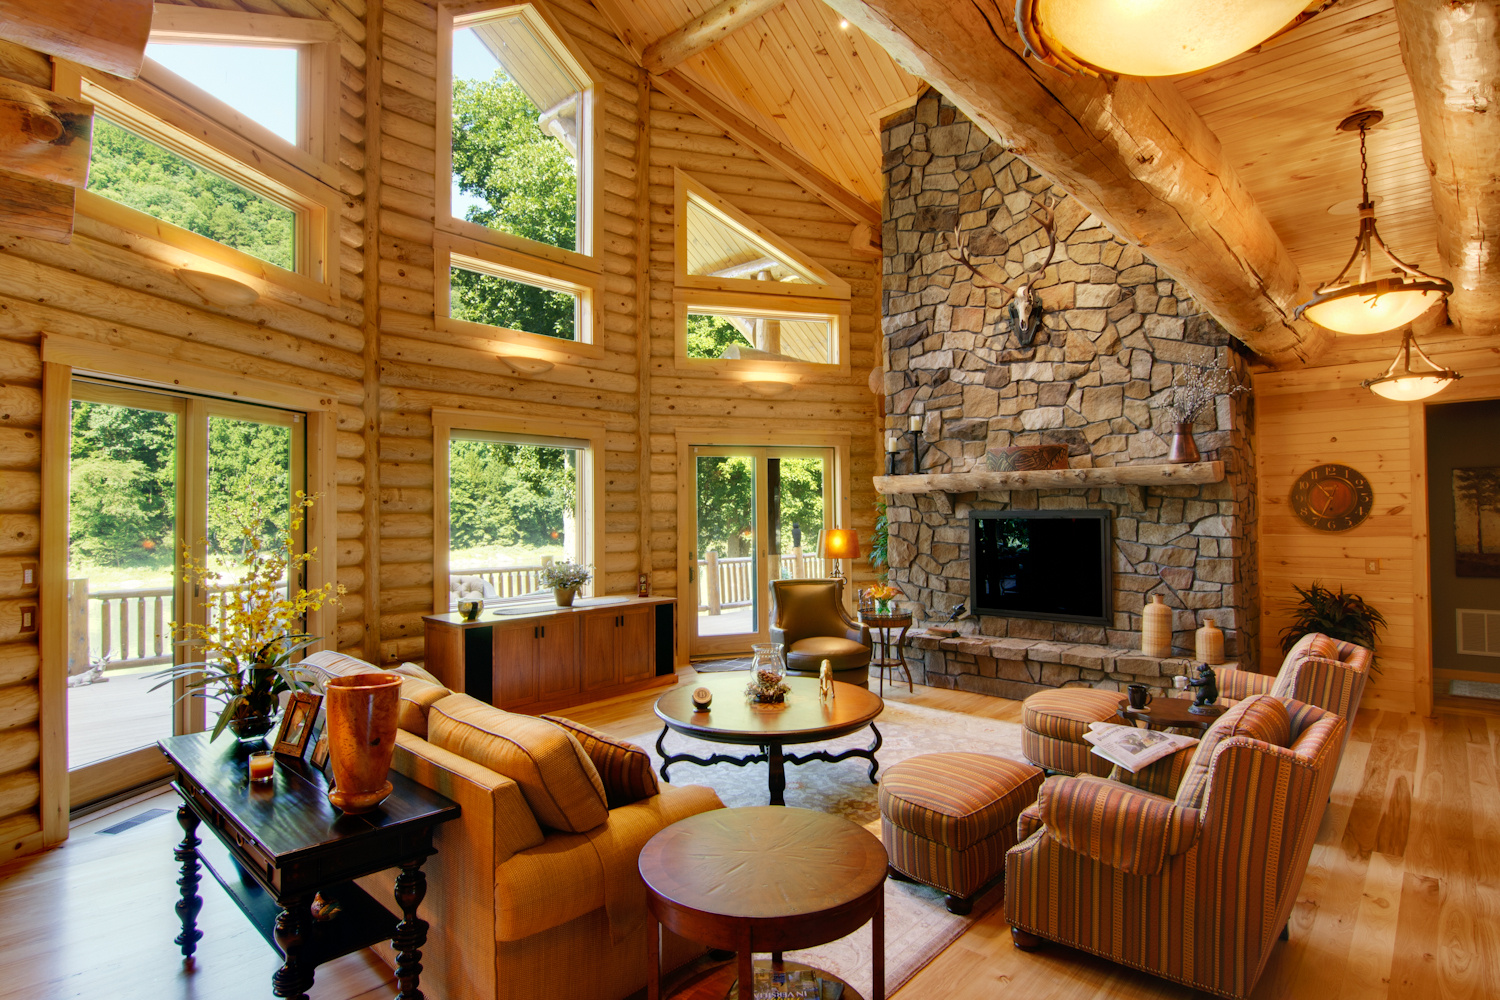 log home interiors high peaks log homes. Black Bedroom Furniture Sets. Home Design Ideas